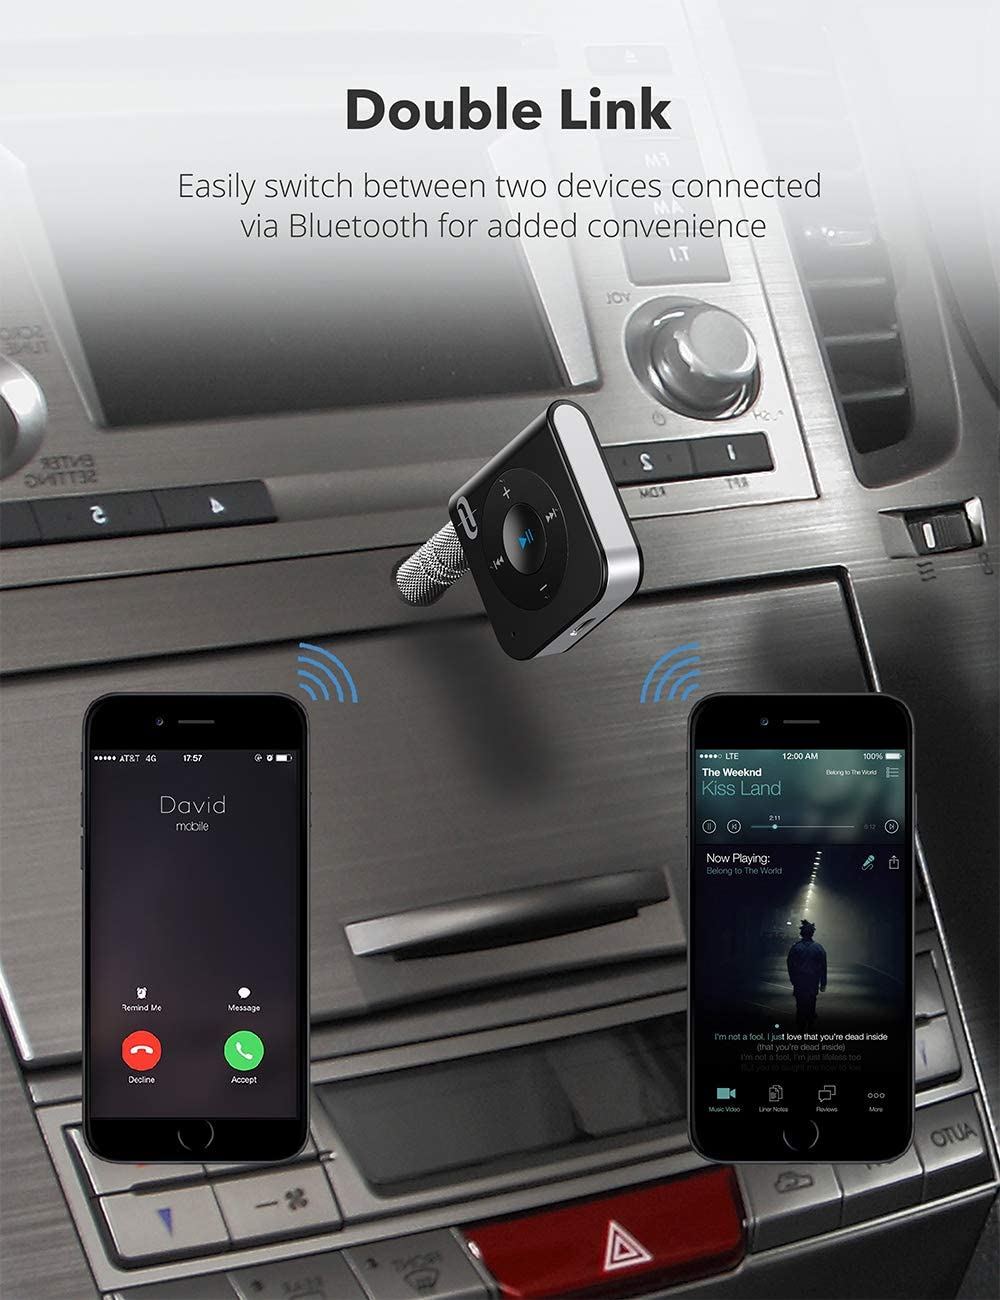 Hands-Free Calling, Bluetooth 5.0, A2DP, CVC Noise Cancelling Bluetooth Receiver TaoTronics 15 Hour Bluetooth Car Kit Bluetooth AUX Adapter Wireless Audio Adapter